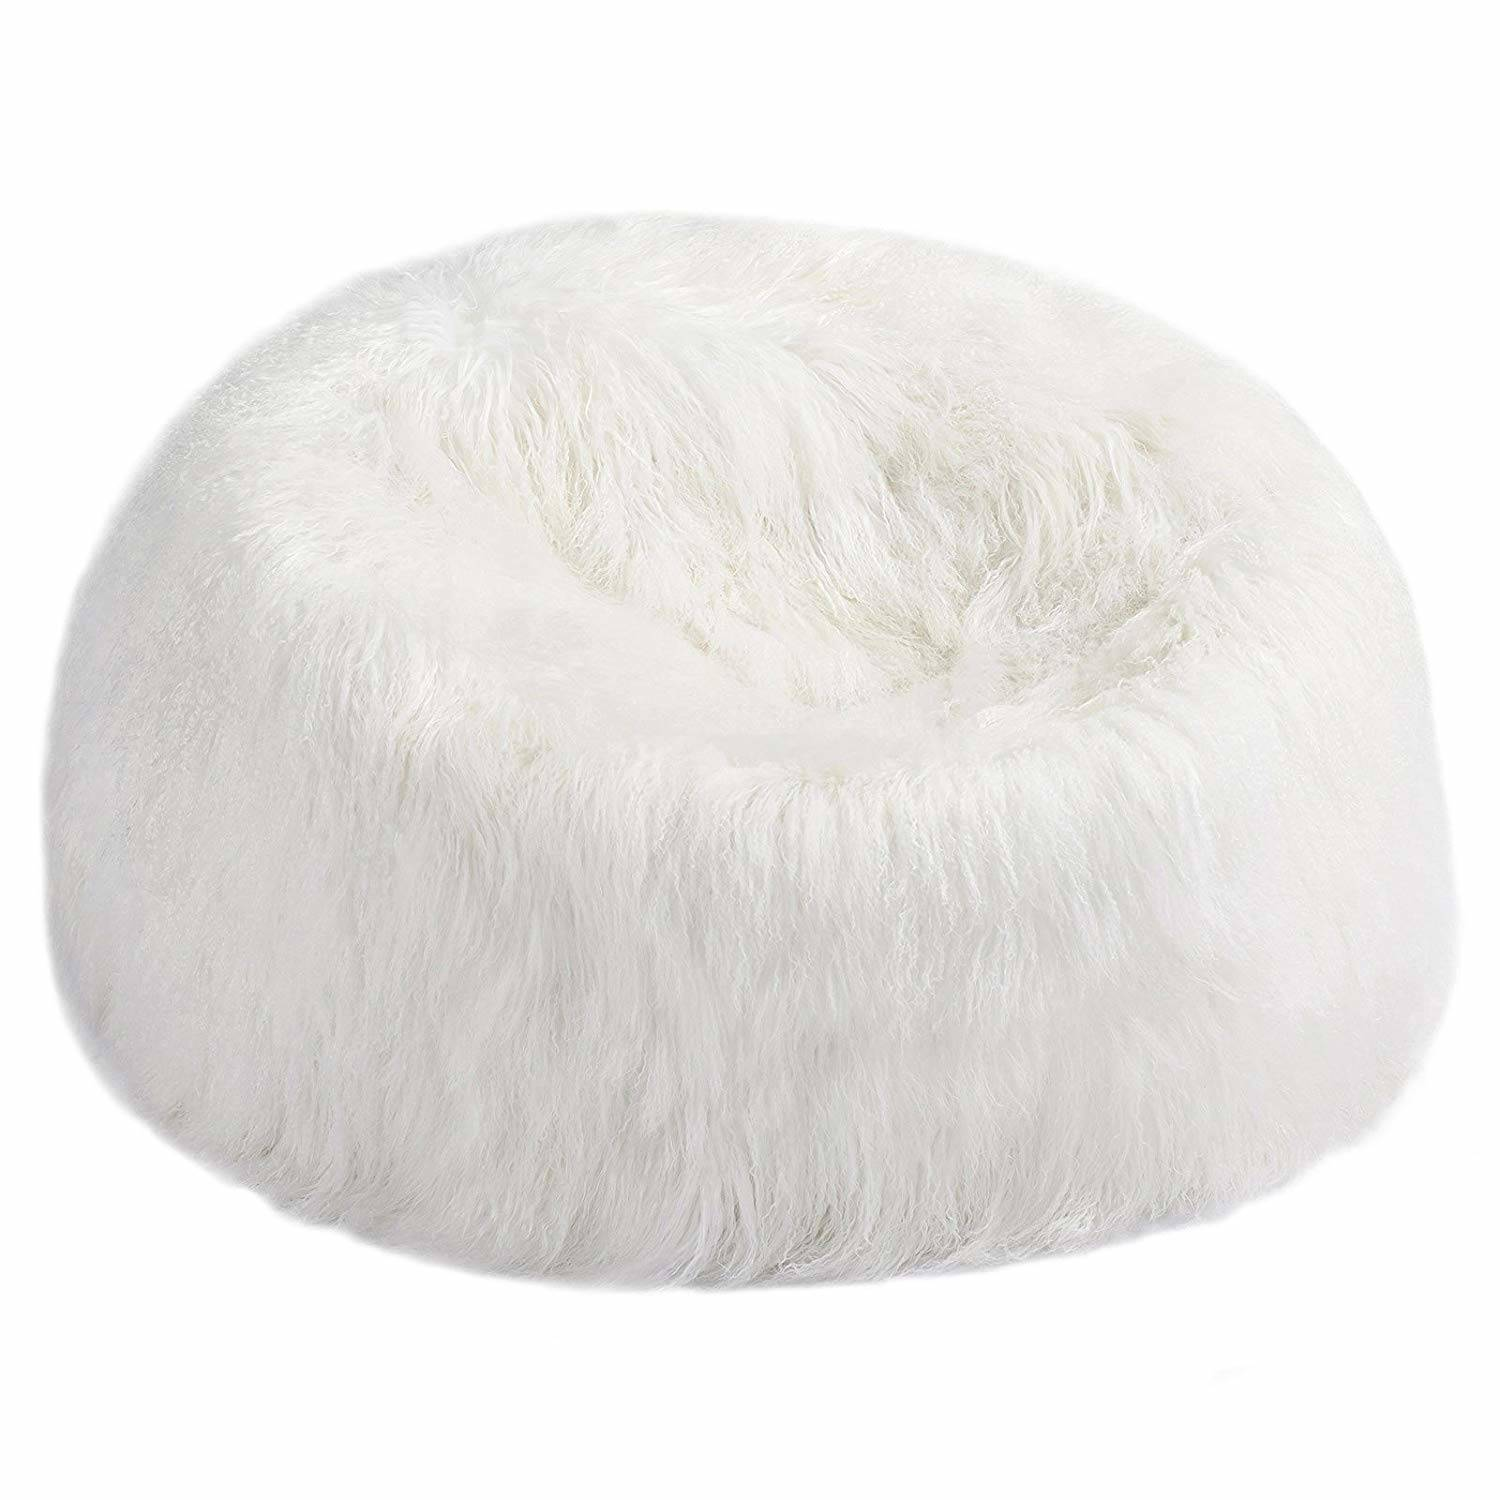 Sheepskin Bean Bag Chair Large Fur Bean Bag Chair White